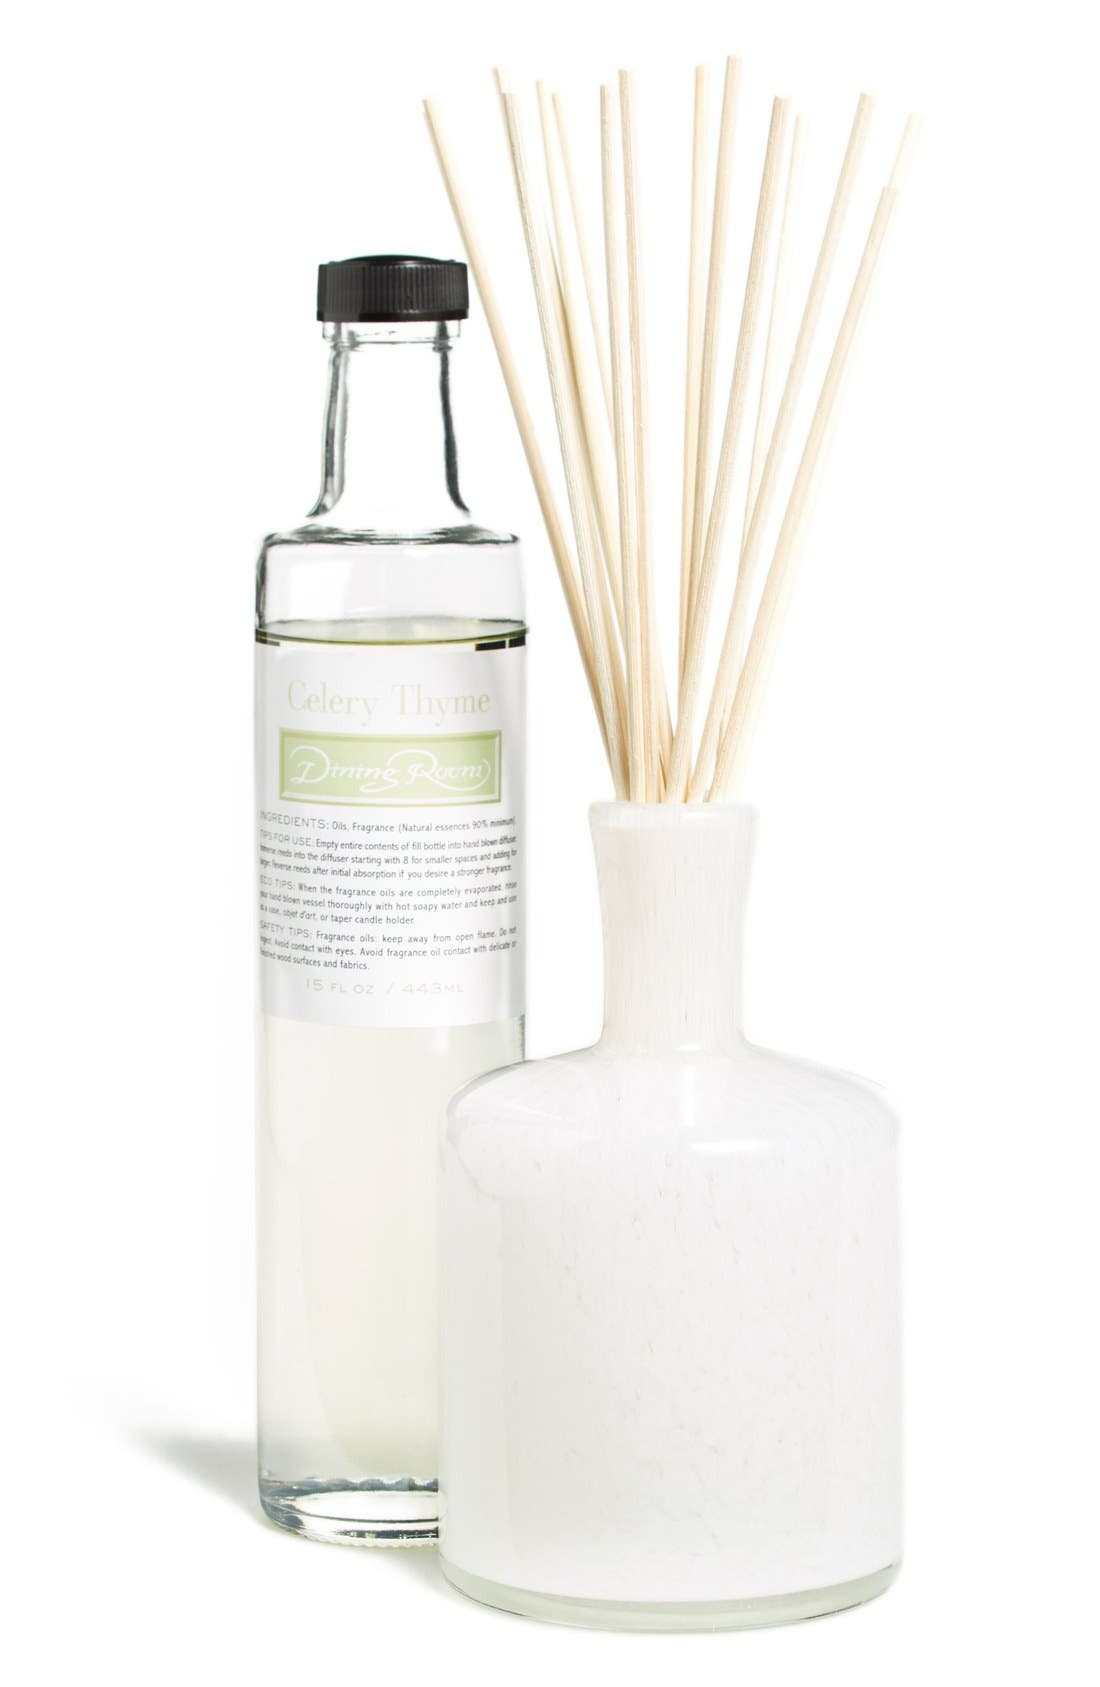 'Celery Thyme - Dining Room' Fragrance Diffuser,                             Main thumbnail 1, color,                             NO COLOR